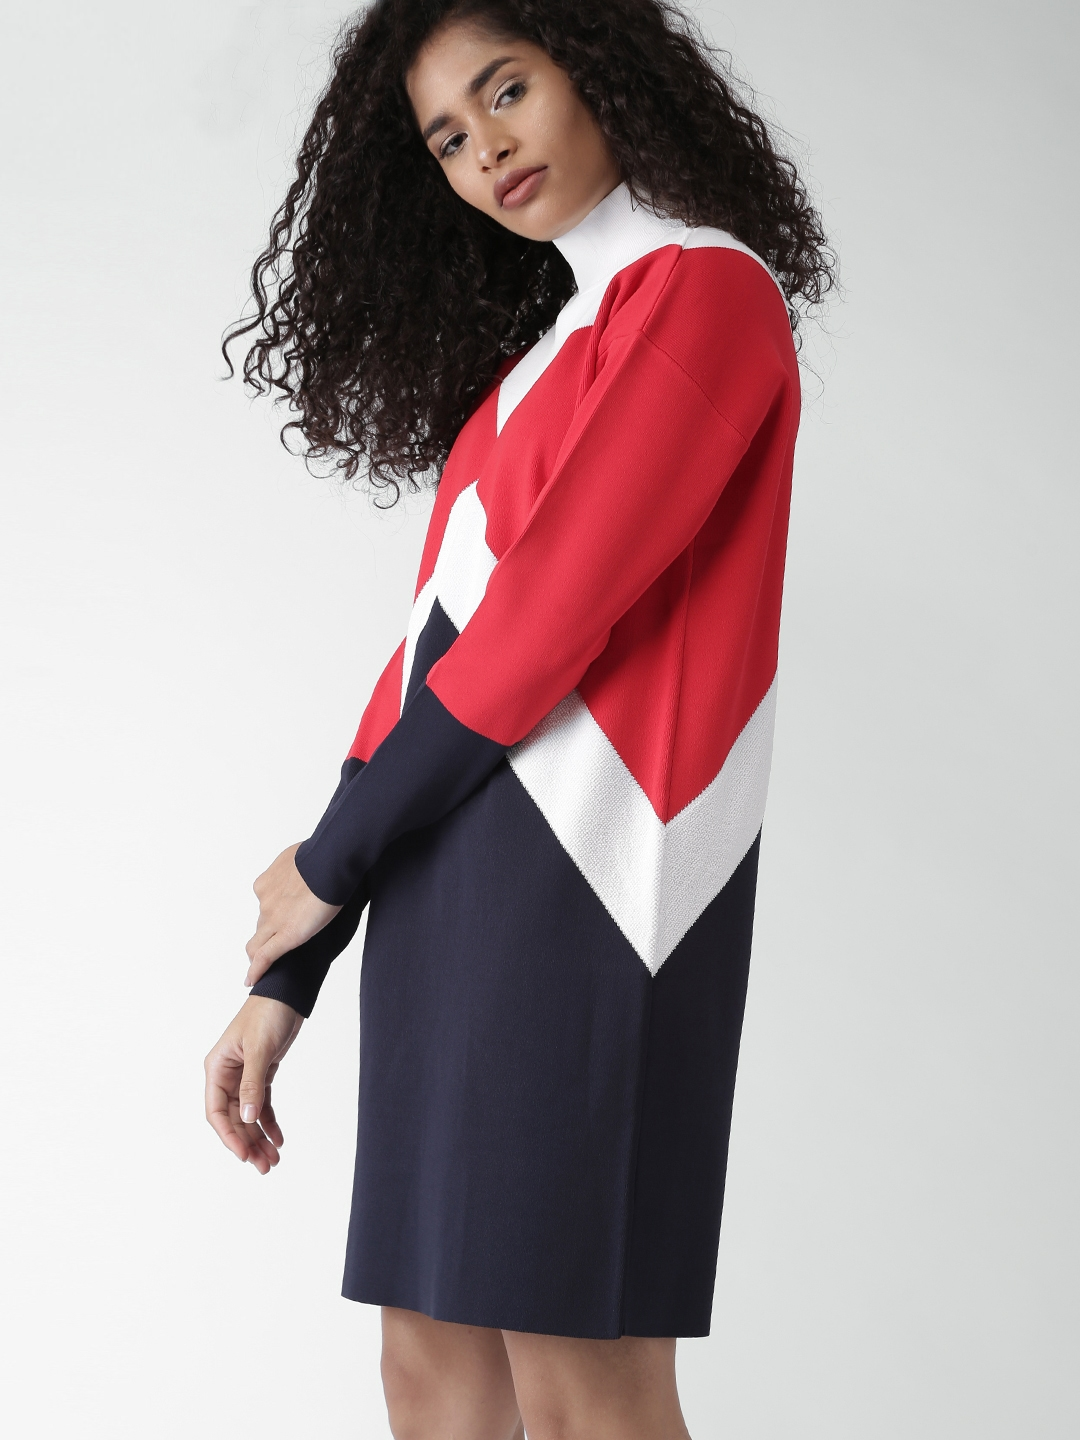 9d27bb8e9d4 Buy Tommy Hilfiger By GIGI HADID Women Red Colourblocked Sweater ...